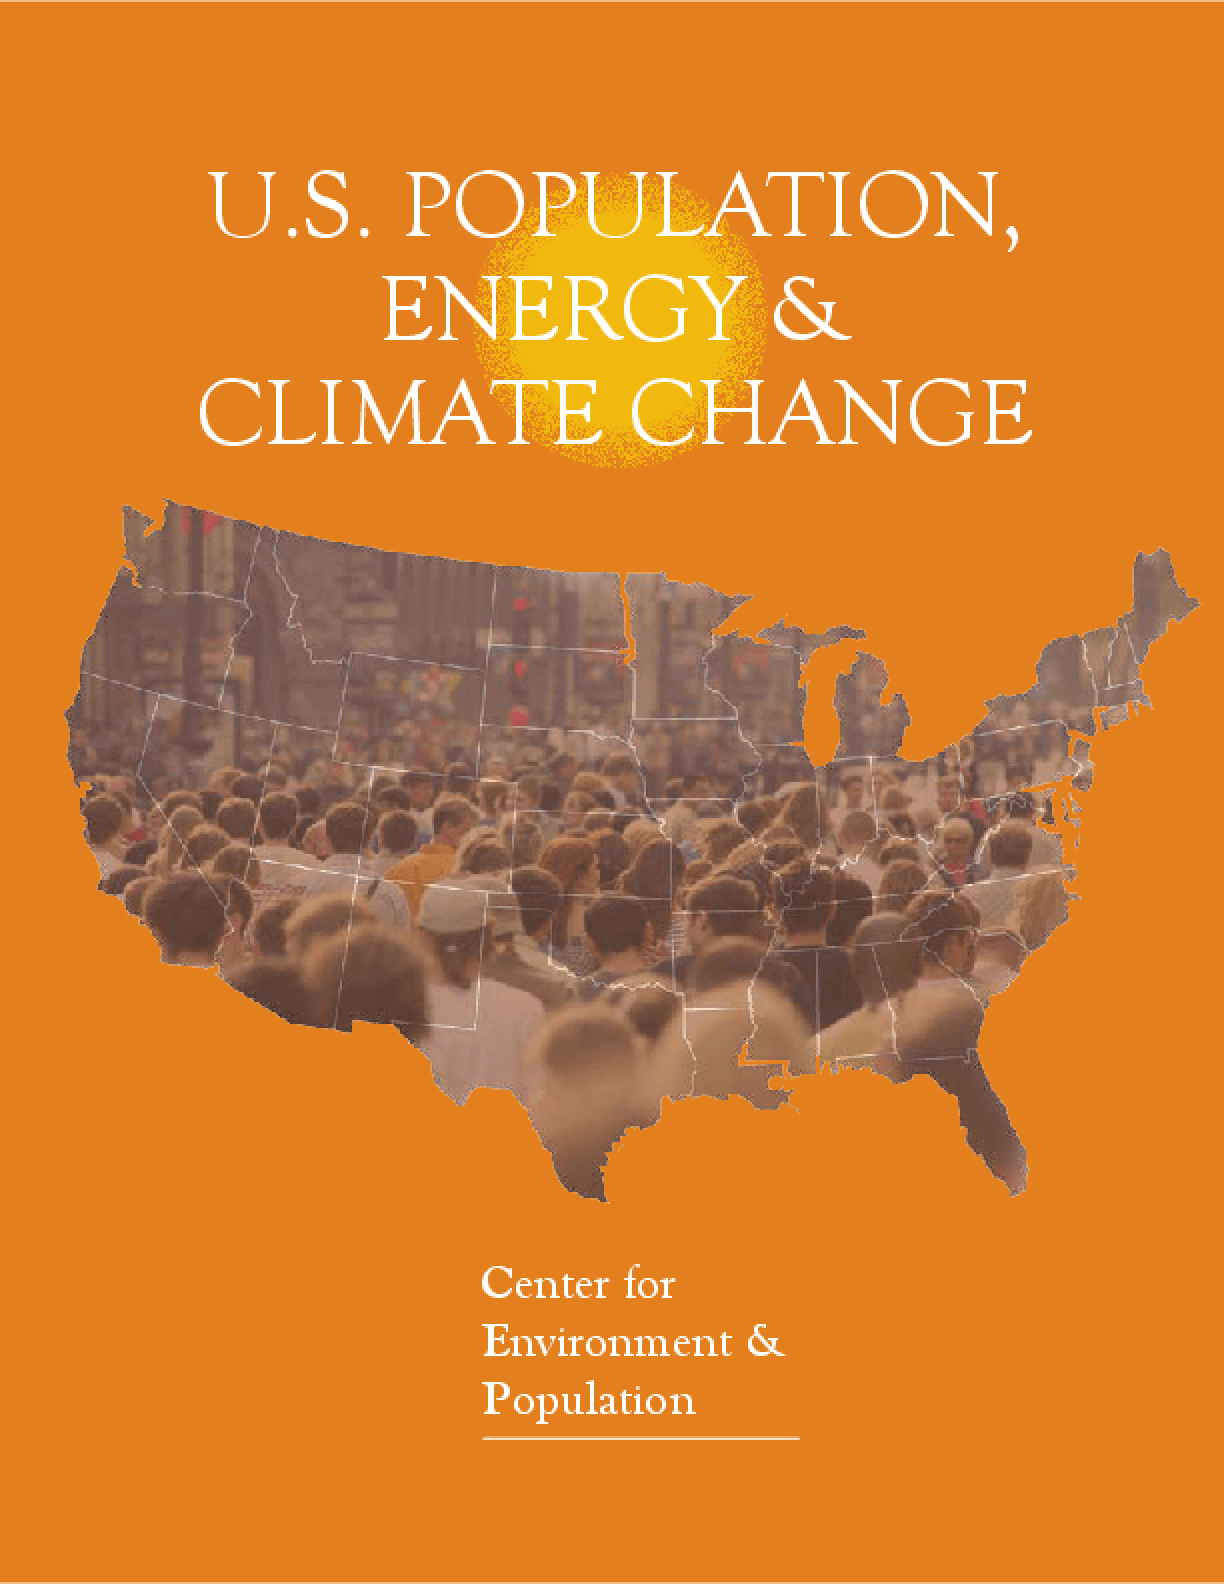 U.S. Population, Energy & Climate Change